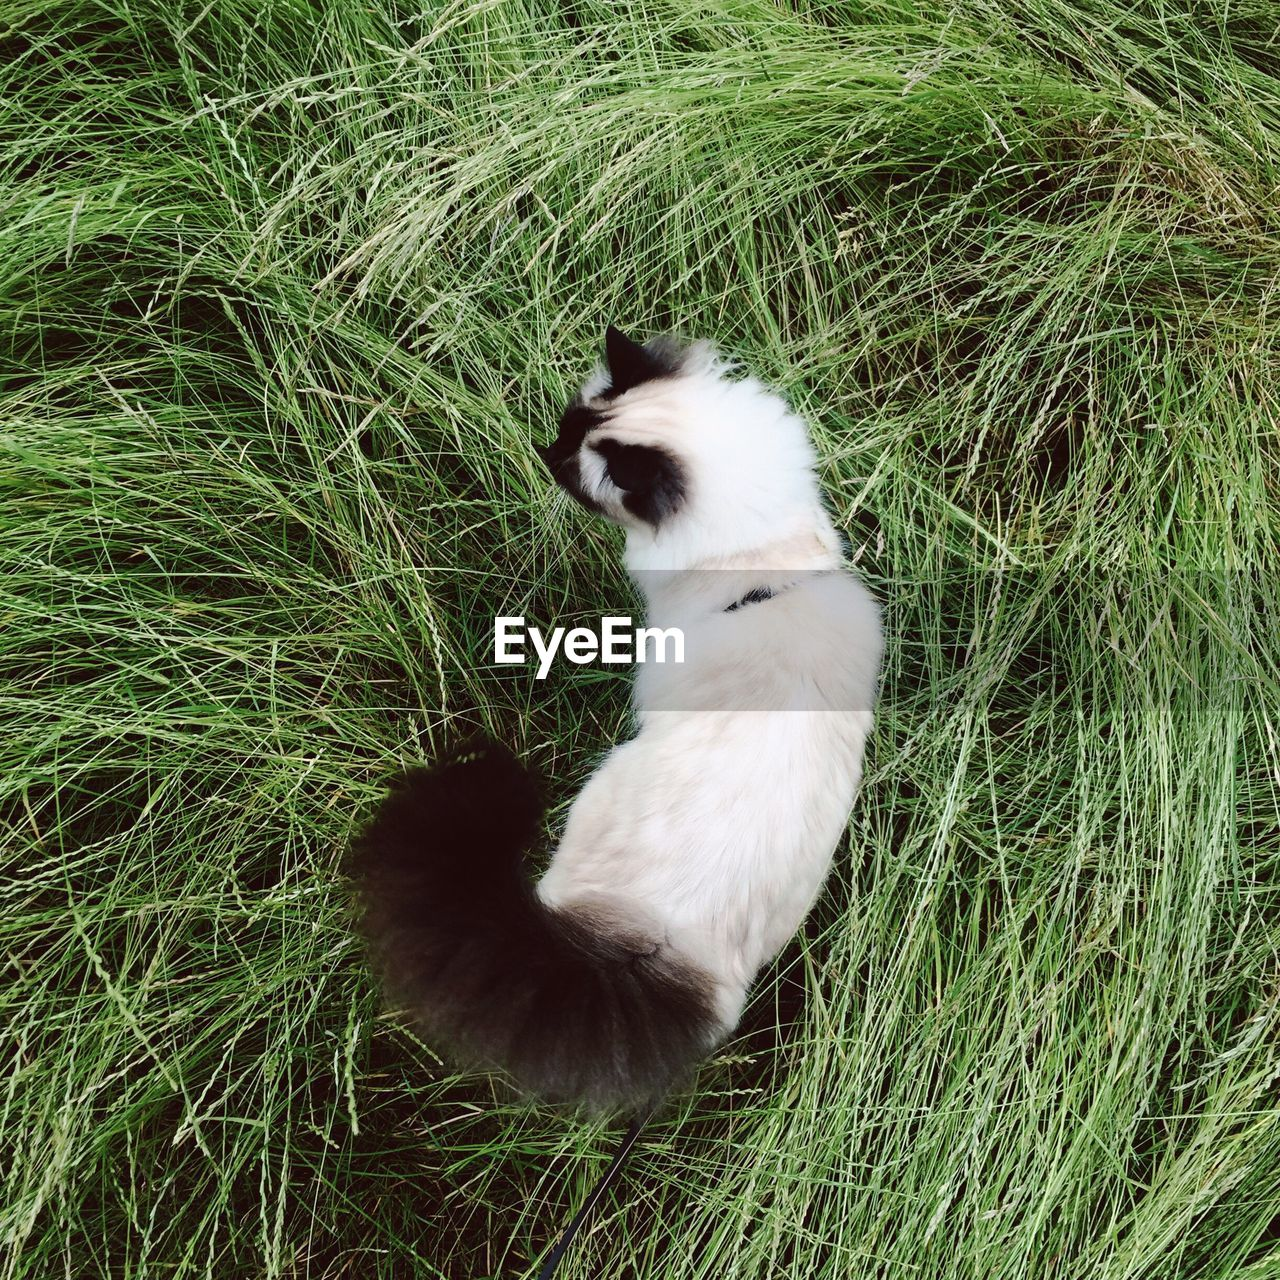 grass, domestic cat, cat, animal themes, one animal, domestic animals, pets, feline, mammal, field, no people, sitting, nature, day, outdoors